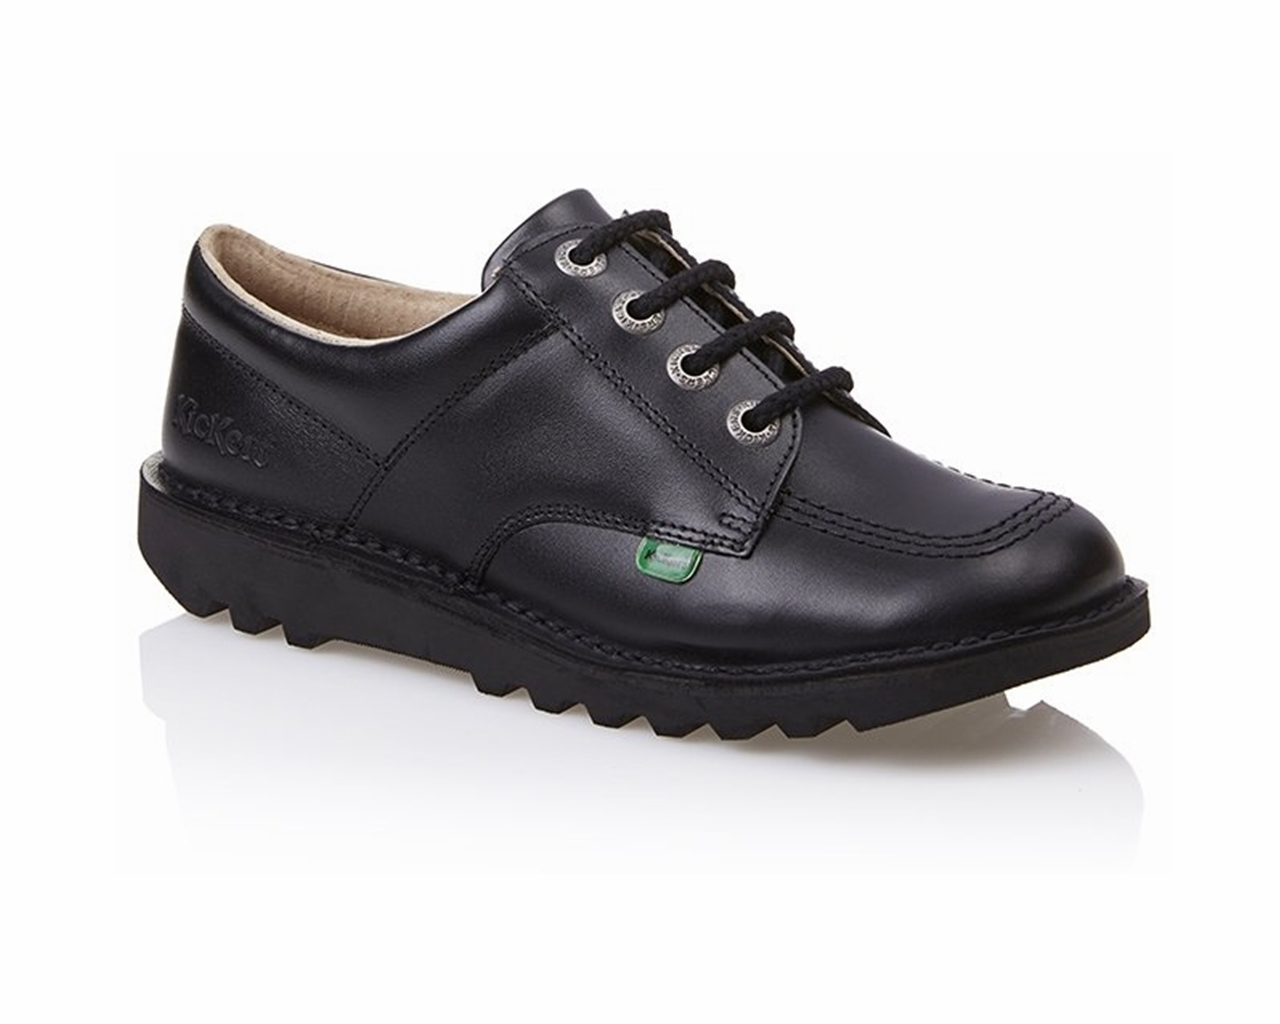 Kickers KICK LO CORE Womens Older Boys Girls Leather Lace-Up School Shoes Black